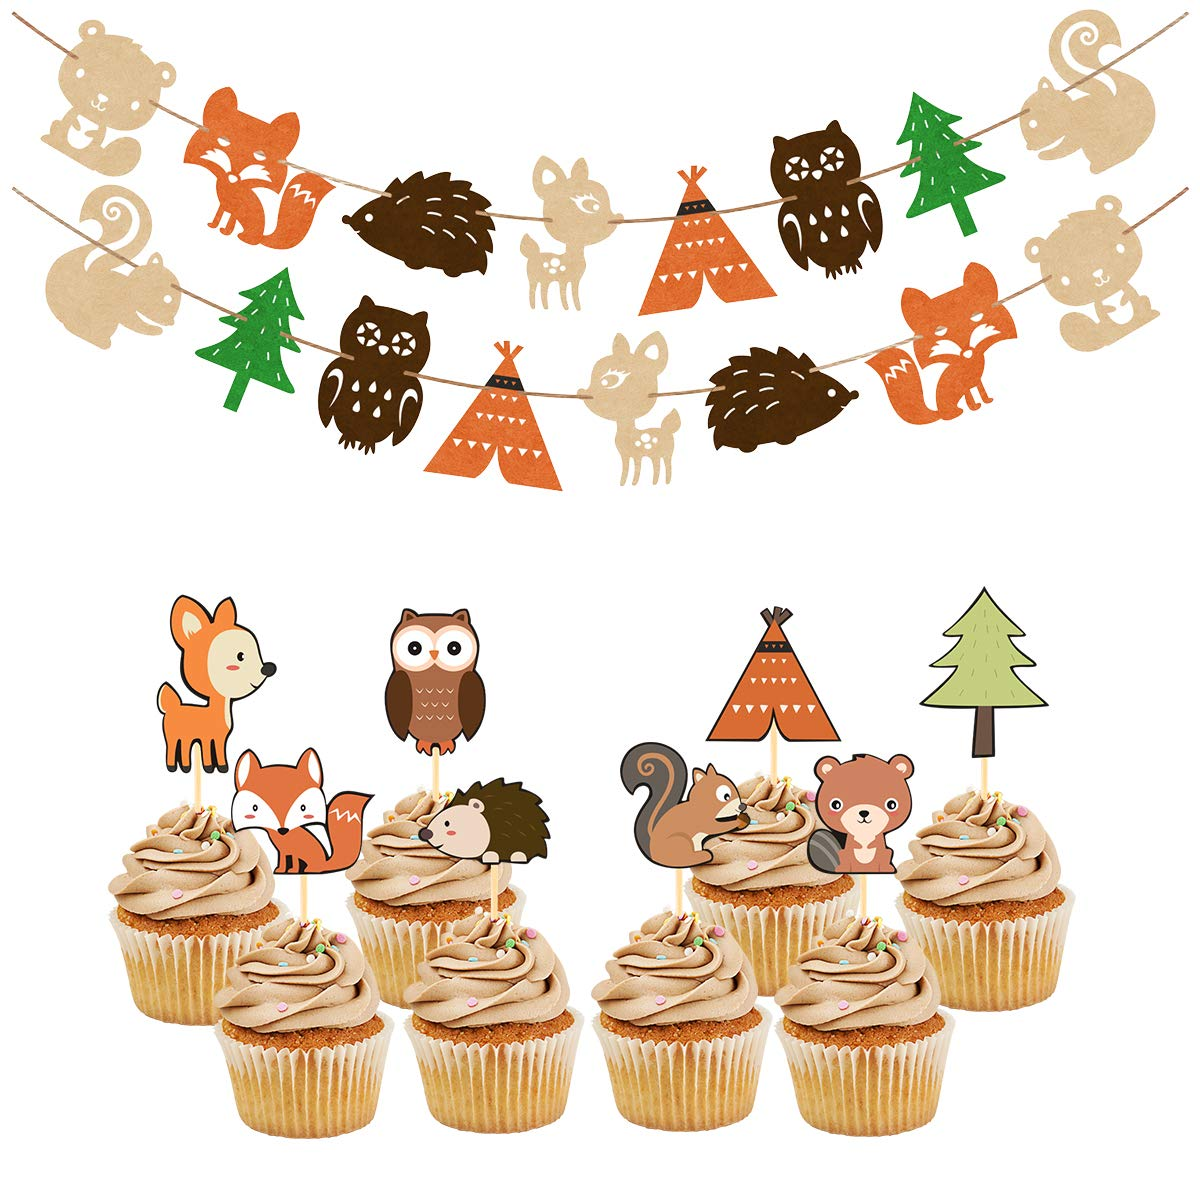 Woodland Party Supplies Set Forest Animal Friends Themed Banner Cupcake Toppers Baby Shower Birthday Party Decorations